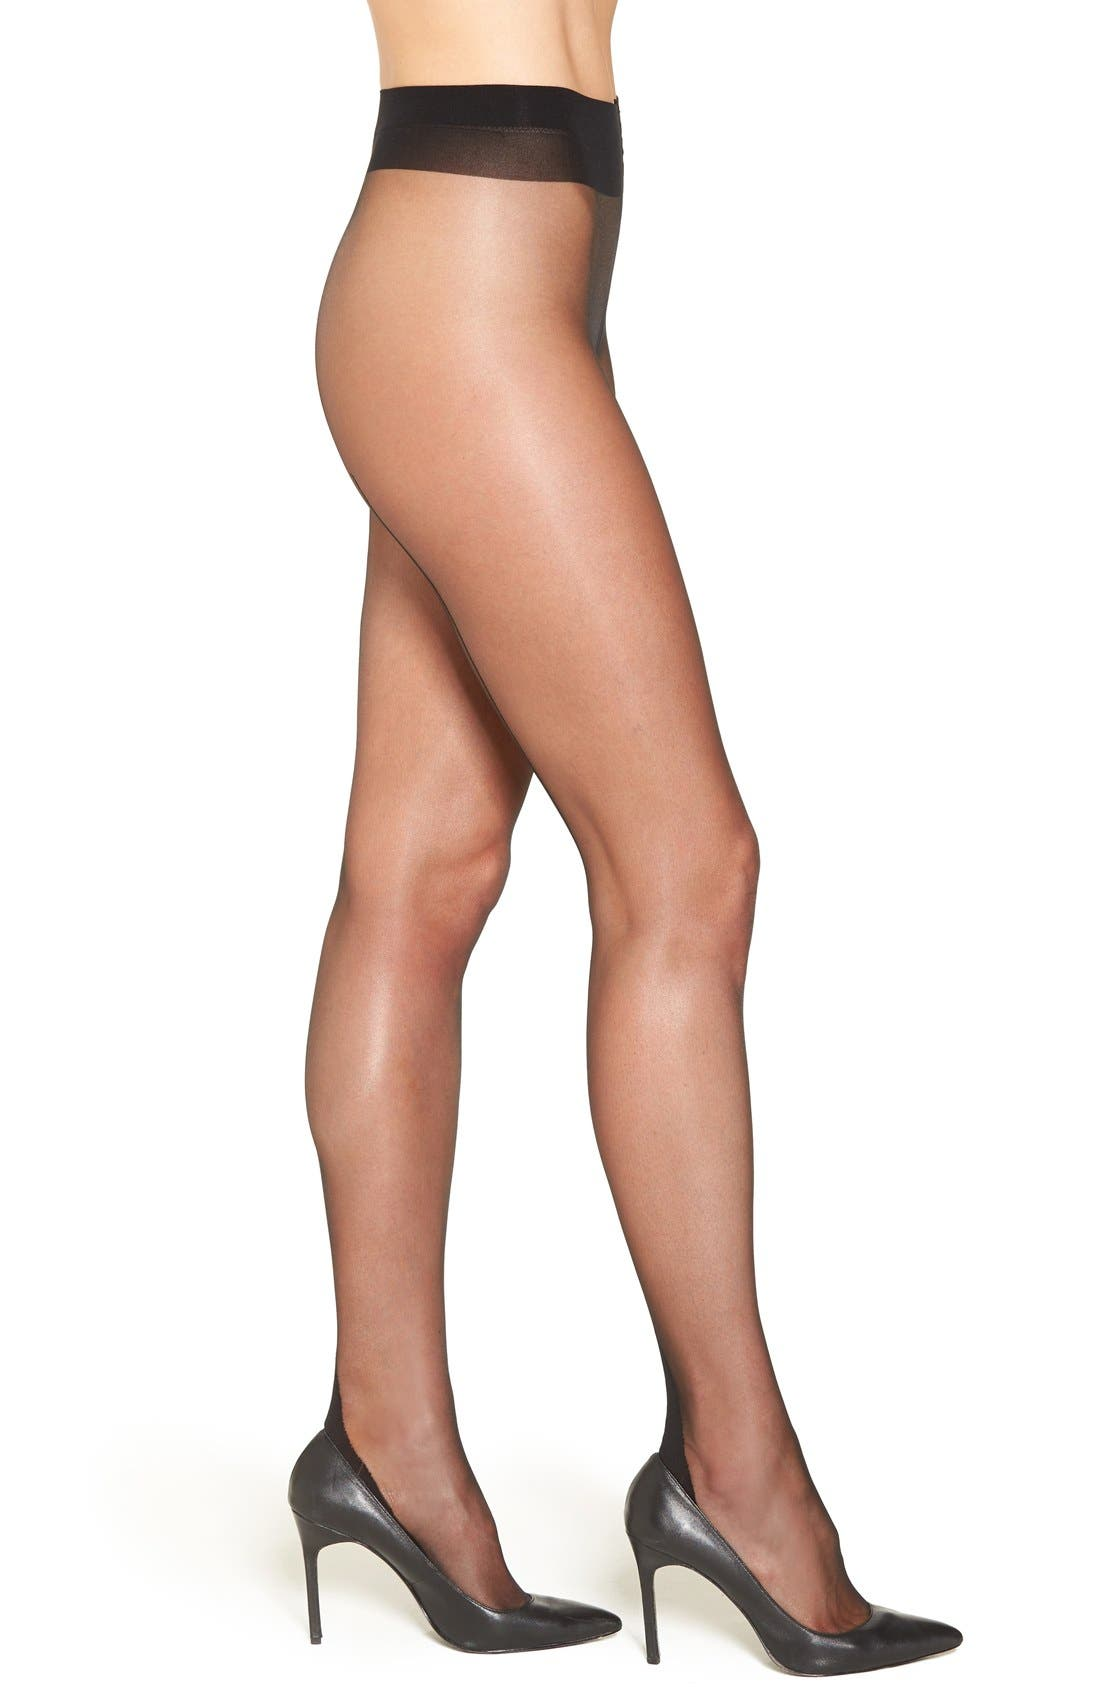 Main Image - Falke 'High Heel' Back Seam Pantyhose